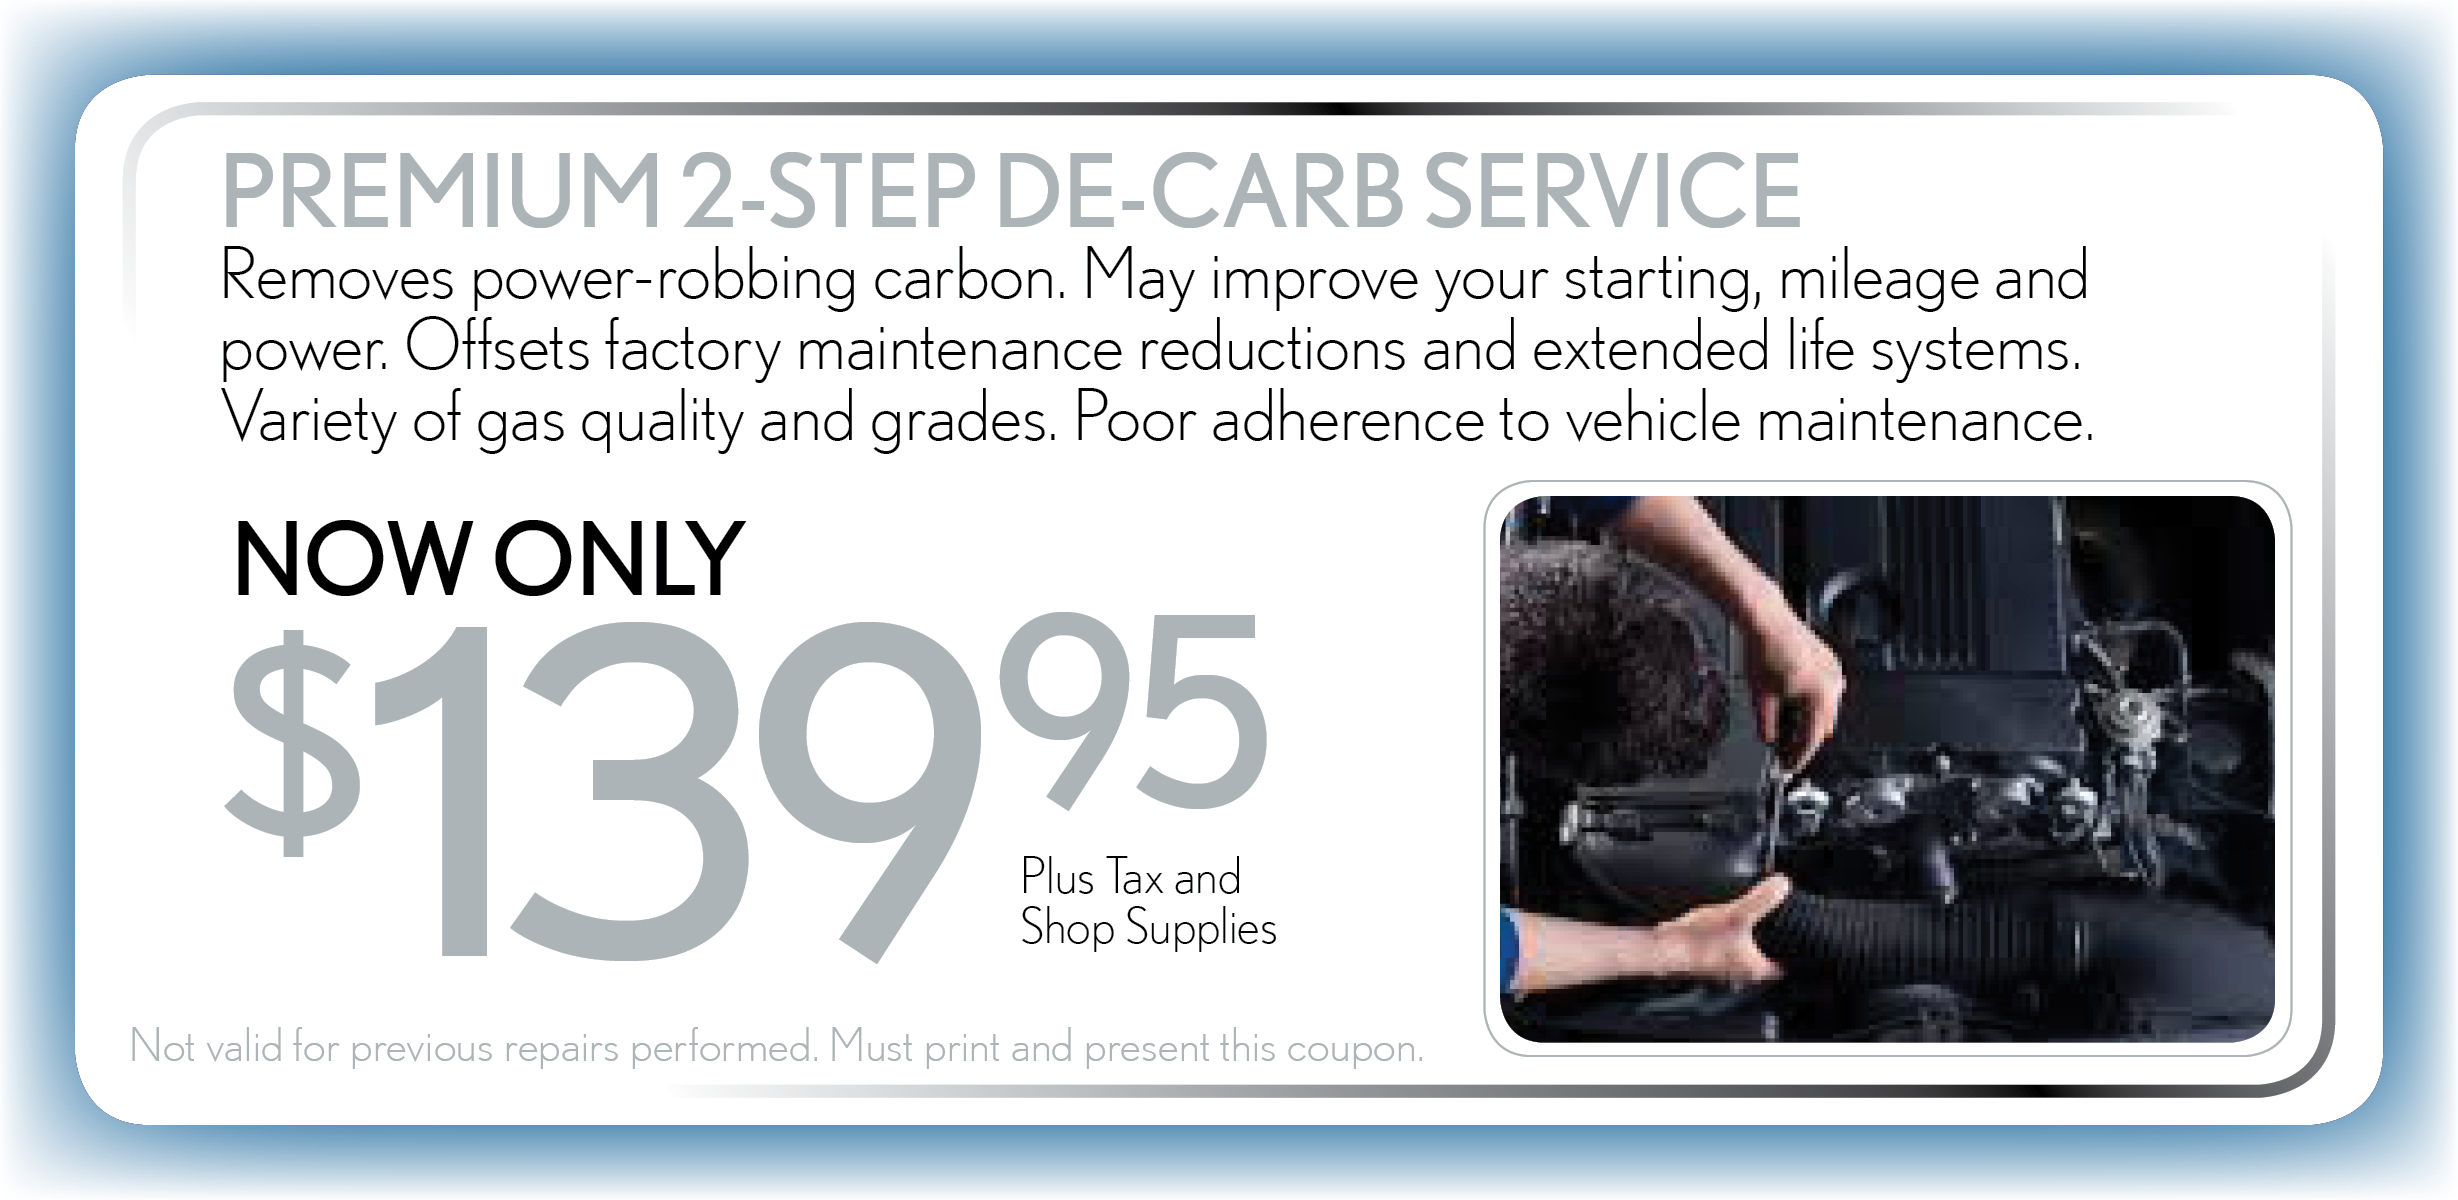 Fuel Injection Service Coupon, Delray Beach Honda Service Special